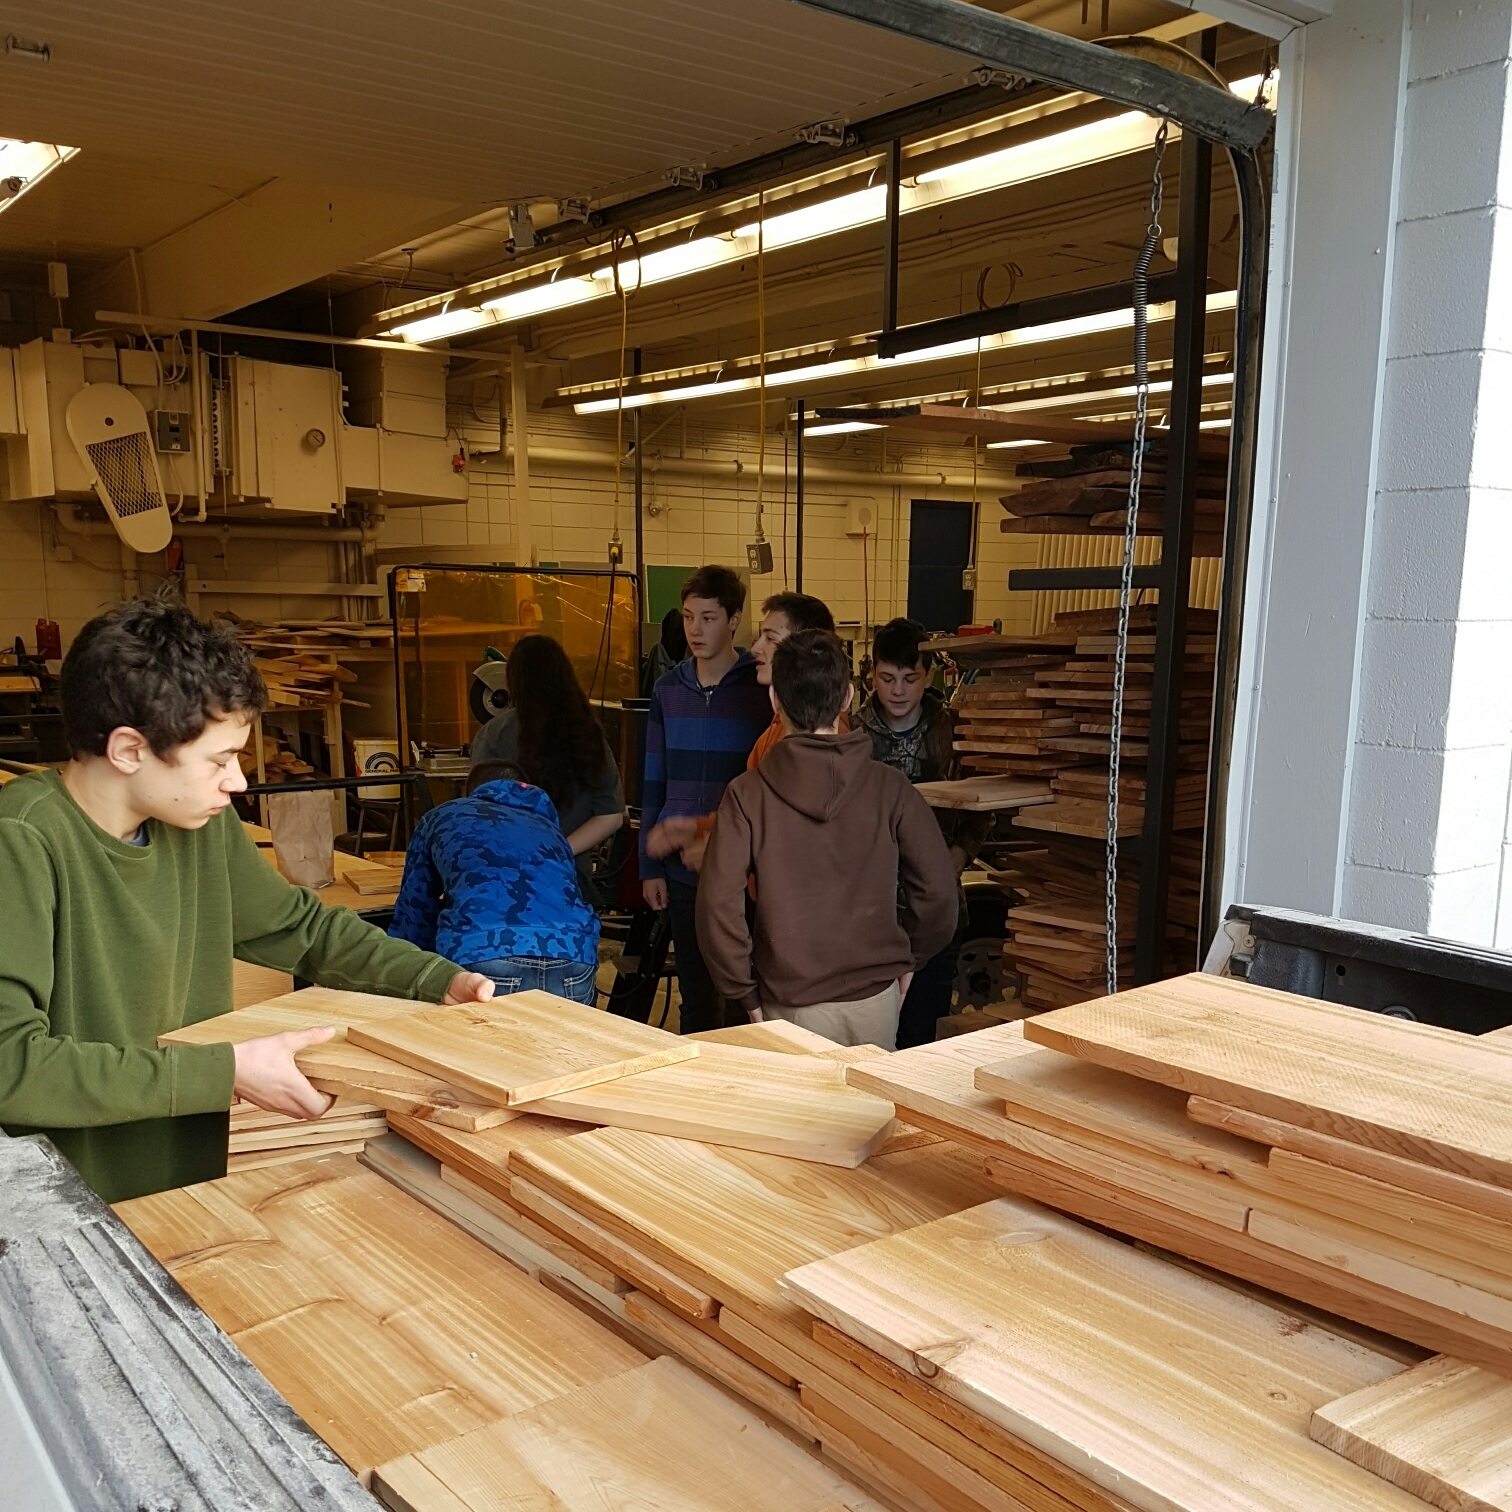 Donating Lumber:Supporting Trades Education and Local Initiatives - GSFP donates cedar lumber to a number of local causes